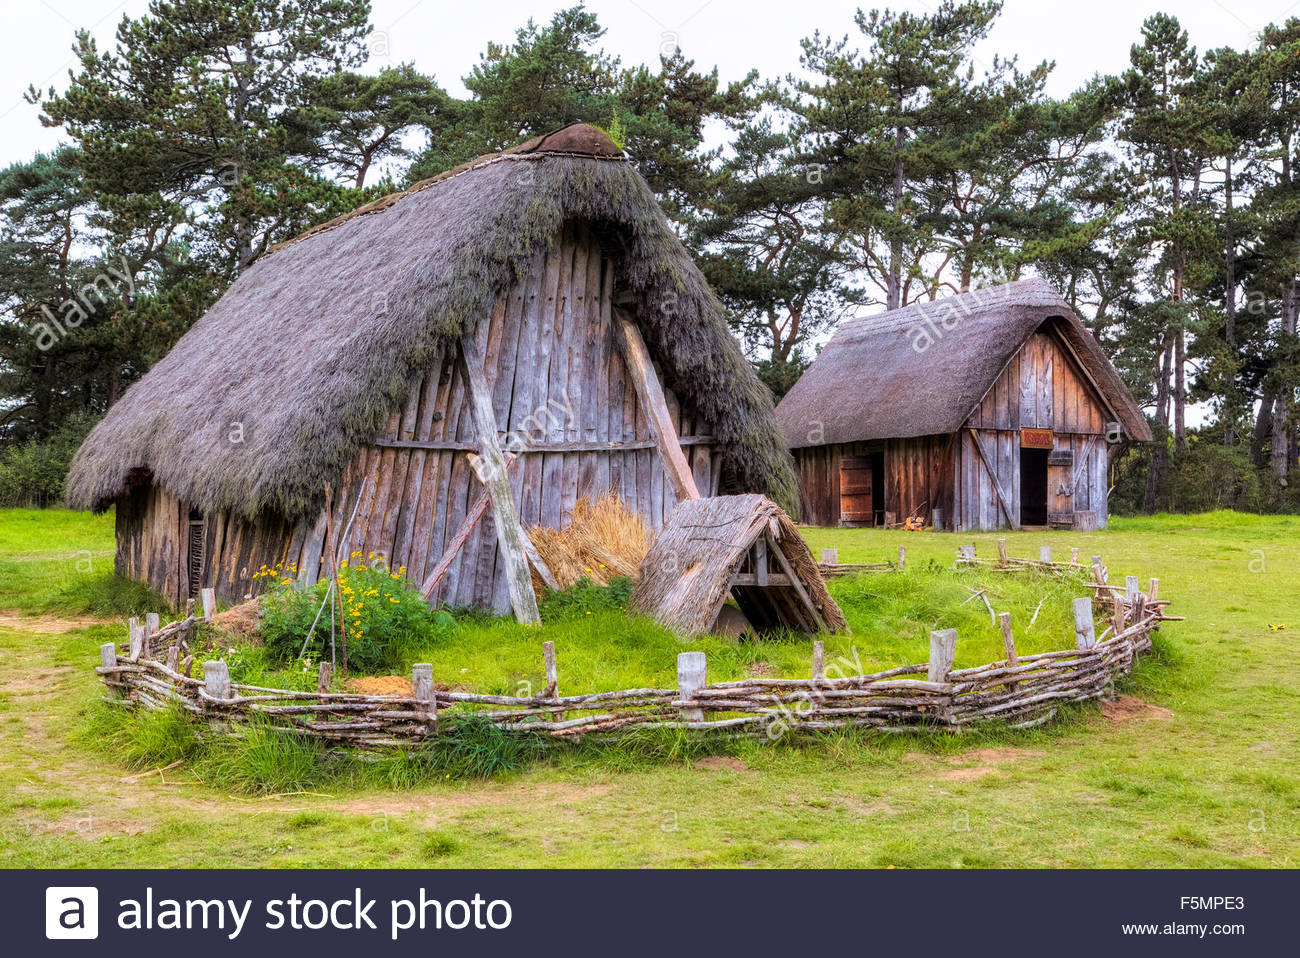 West Stow Anglo Saxon Village, England 2019.